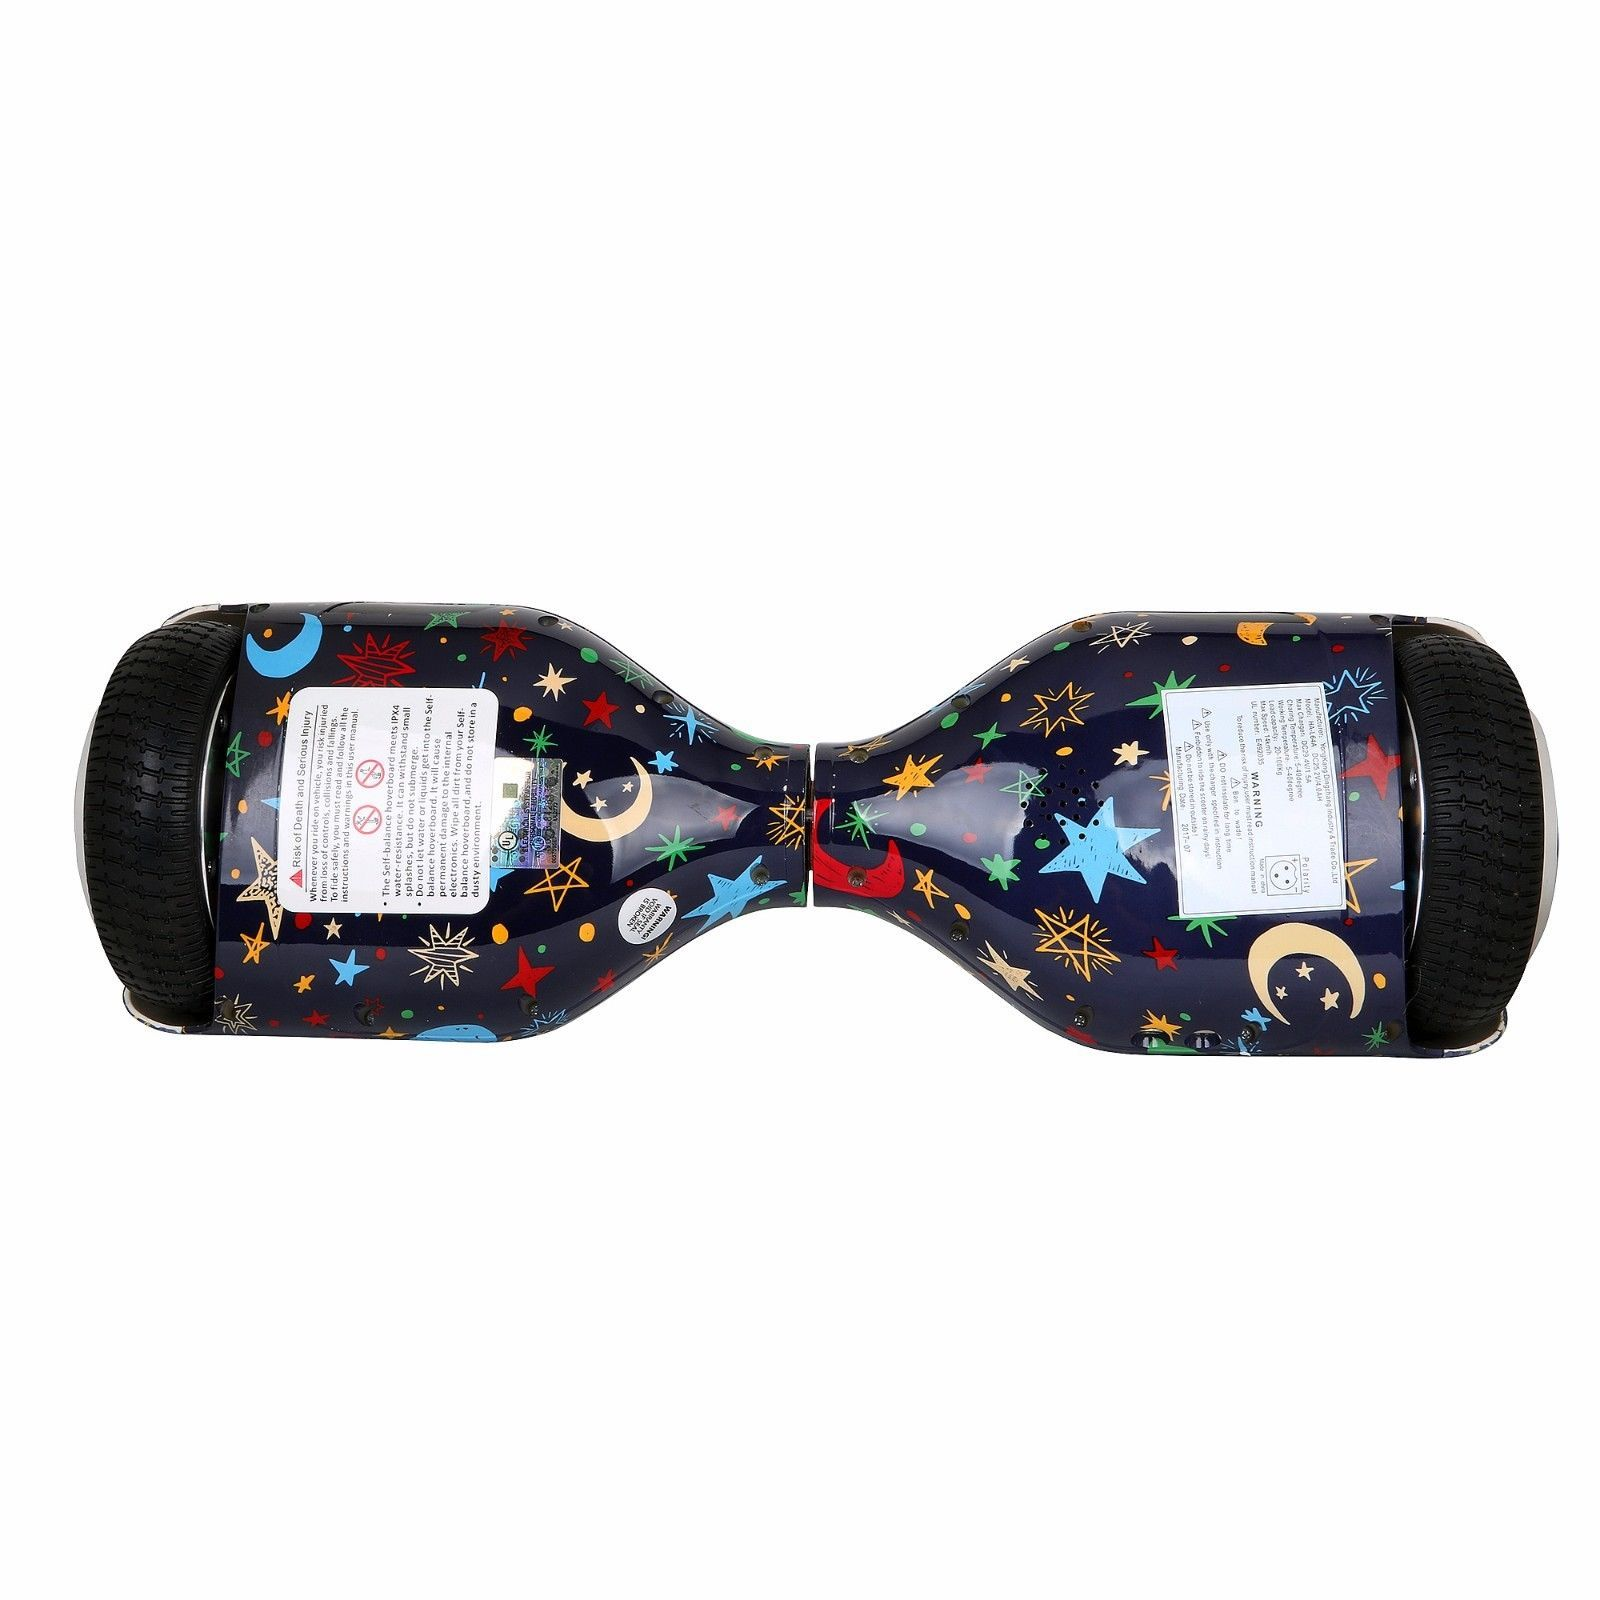 Twinkle Star Hoverboard Bluetooth LED's Two Wheel Balance Scooter UL2272